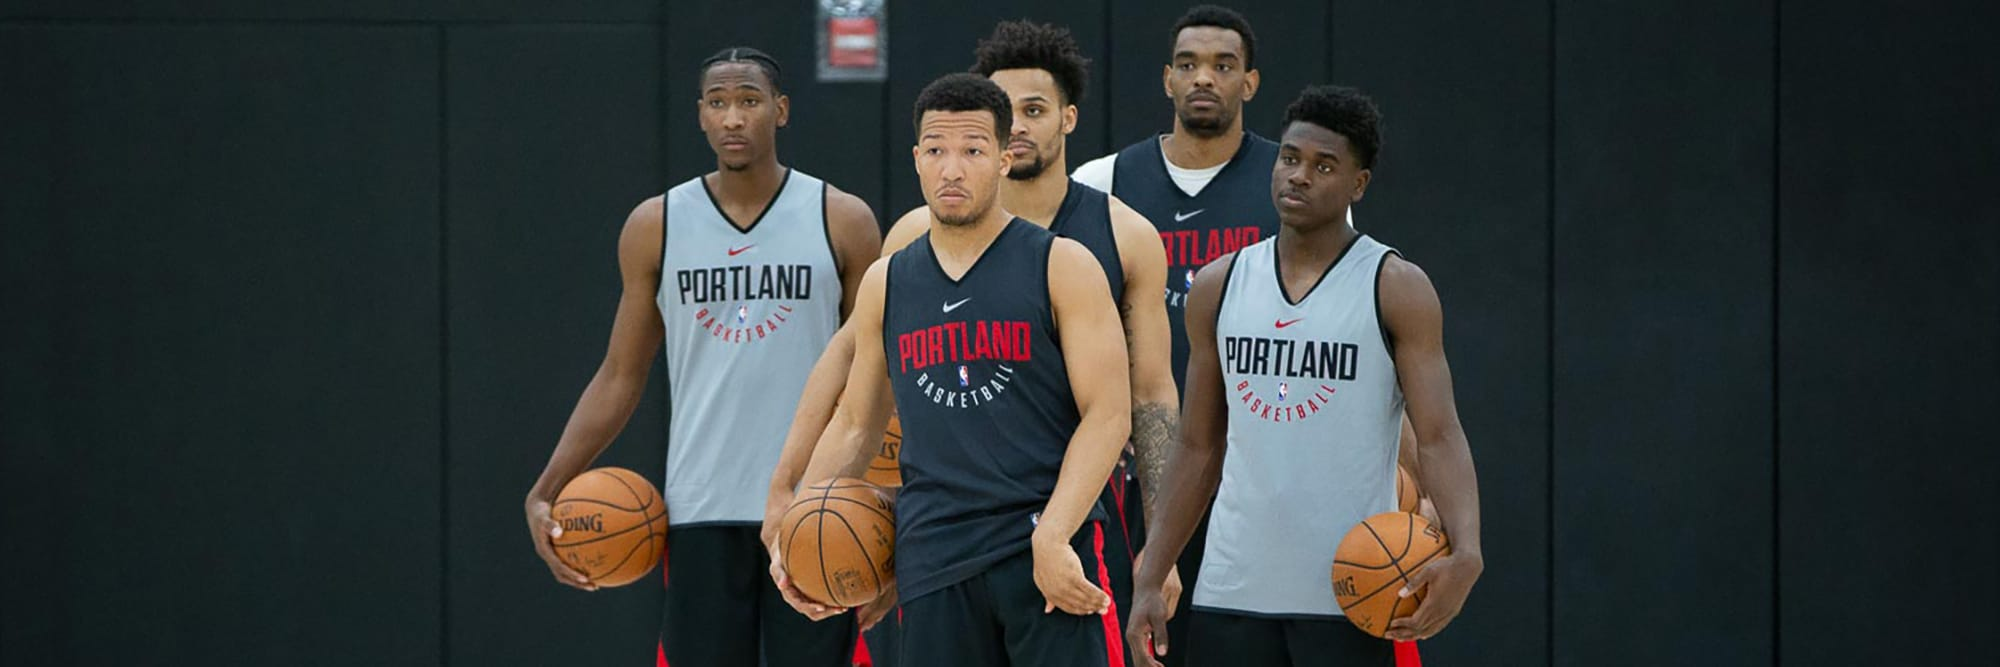 7bb5d698fd3 Portland's Pre-Draft Workouts Begin With A Slate Of Familiar Names ...